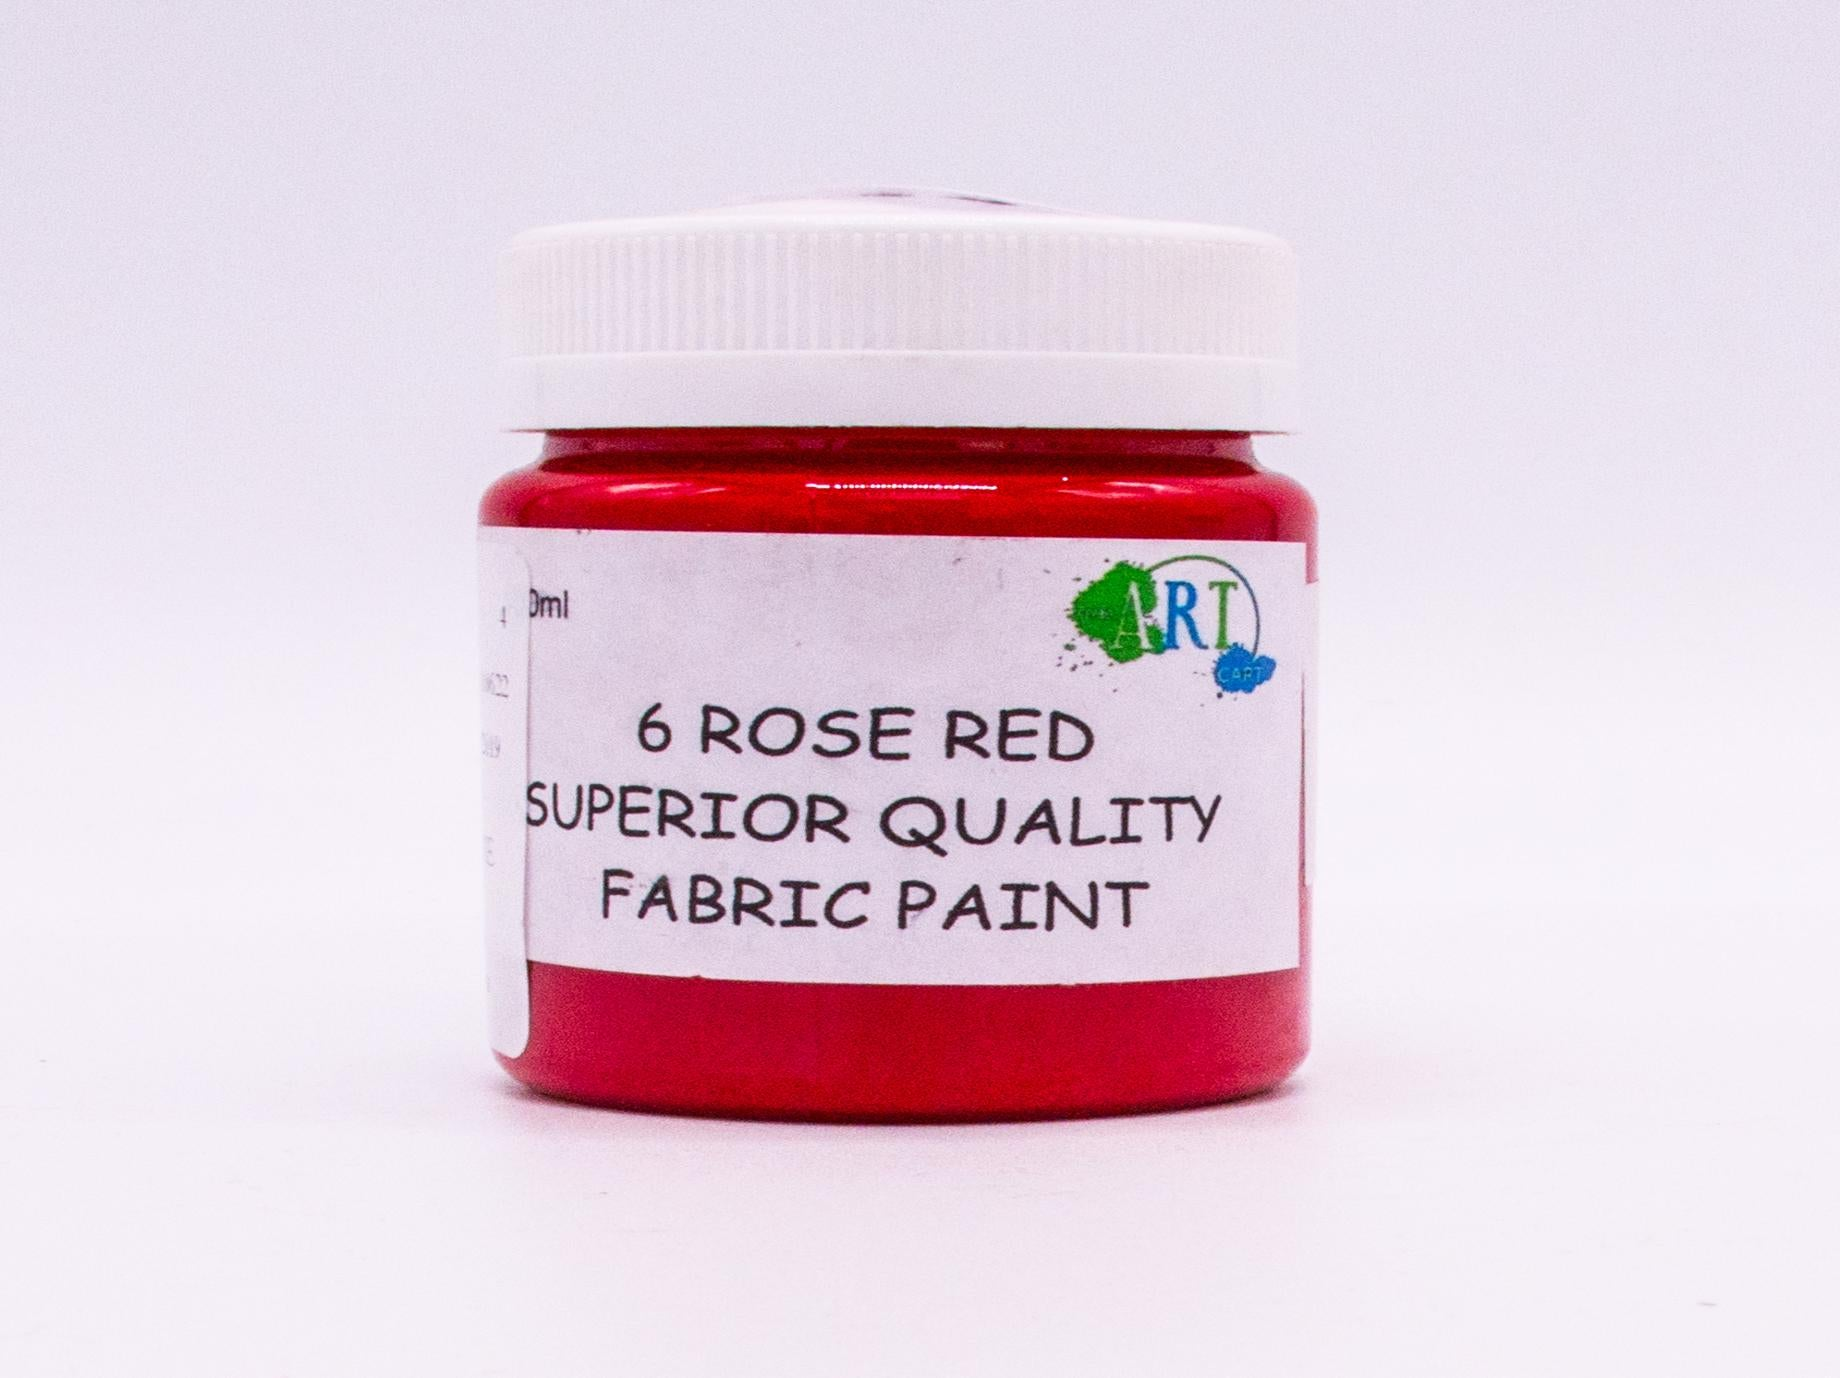 100ml FABRIC PAINT ROSE RED